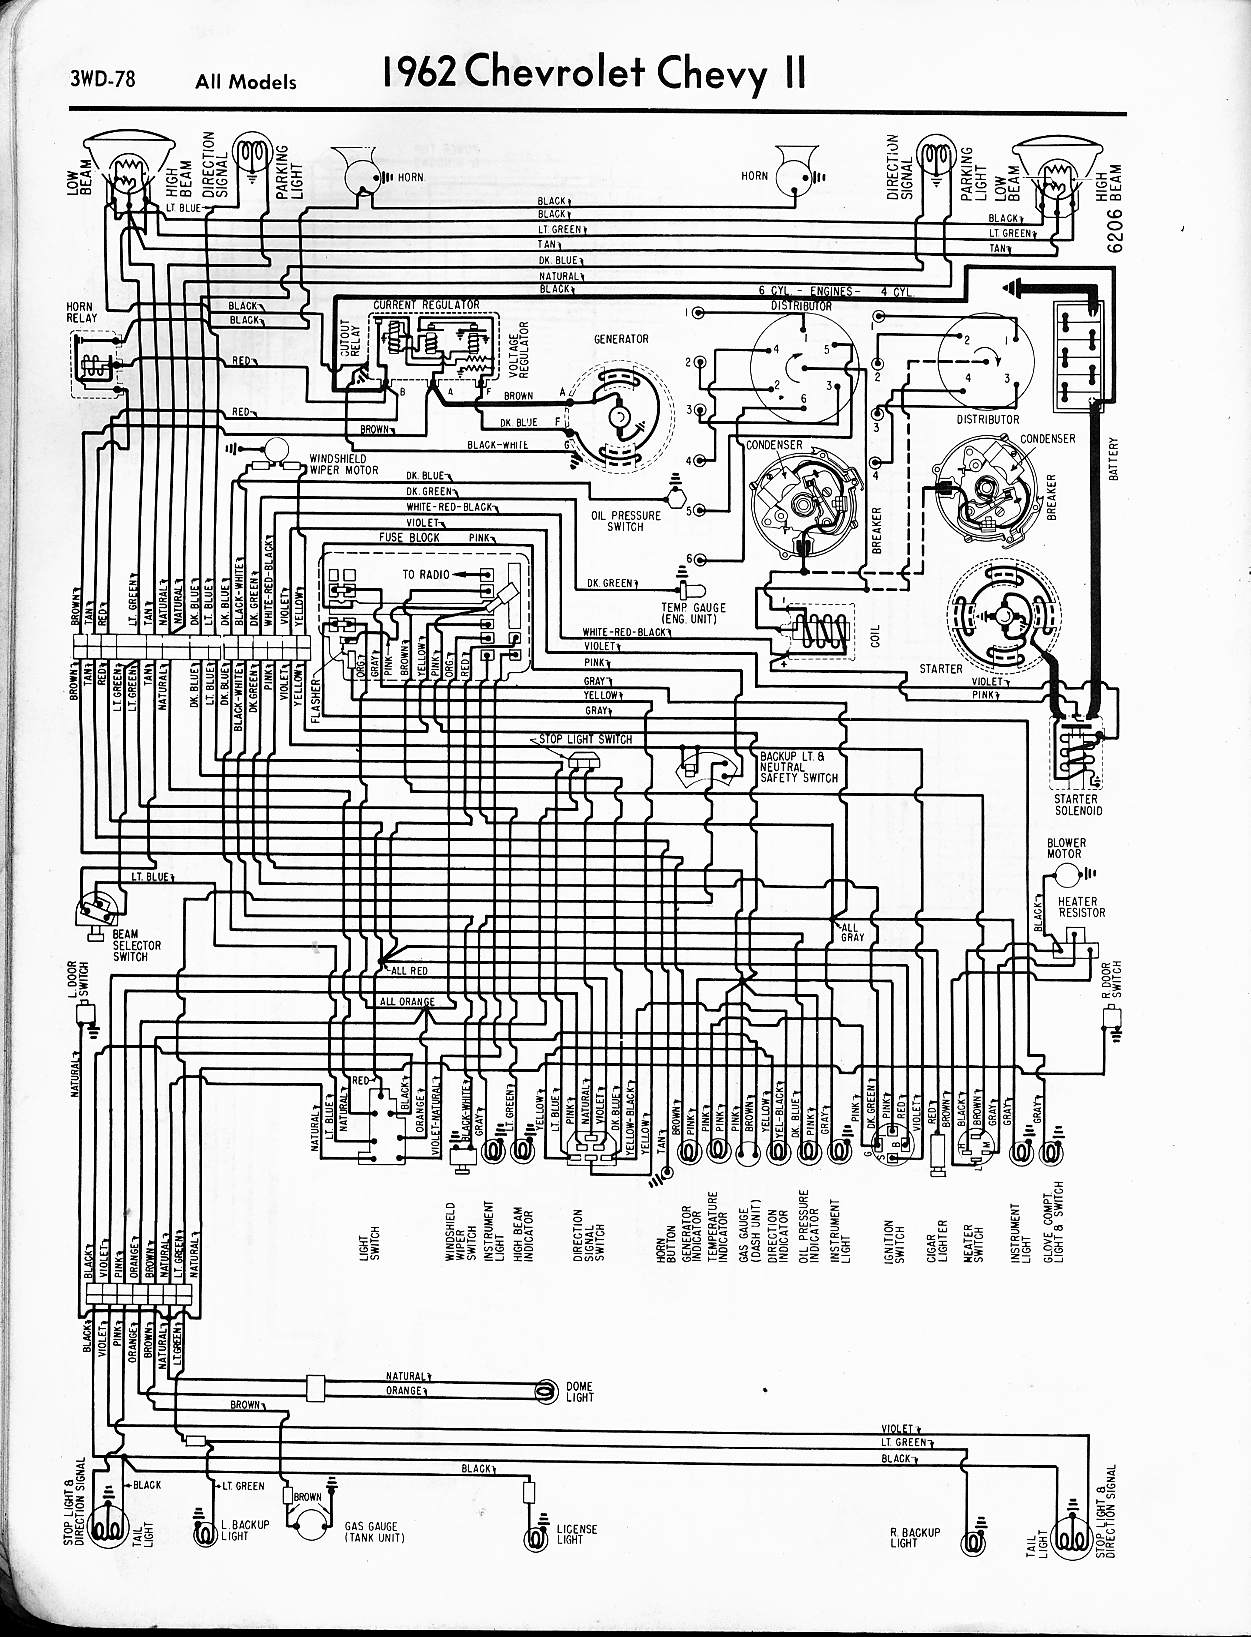 MWireChev62_3WD 078 57 65 chevy wiring diagrams 1961 impala wiper motor wiring diagram at bayanpartner.co